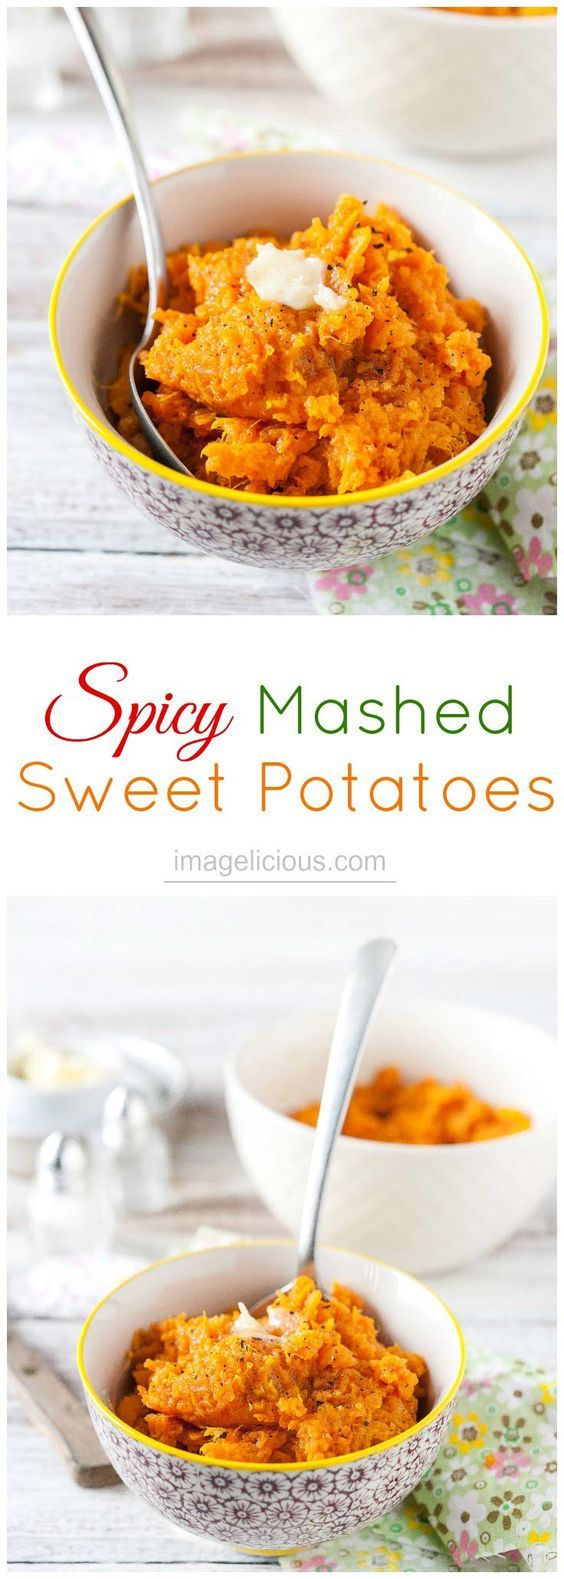 These Spicy Mashed Sweet Potatoes are an excellent side dish - sweet, savoury, and spicy they are a delicious accompaniment to your favourite protein. Made with regular or vegan butter they will satisfy any diet | Imagelicious: